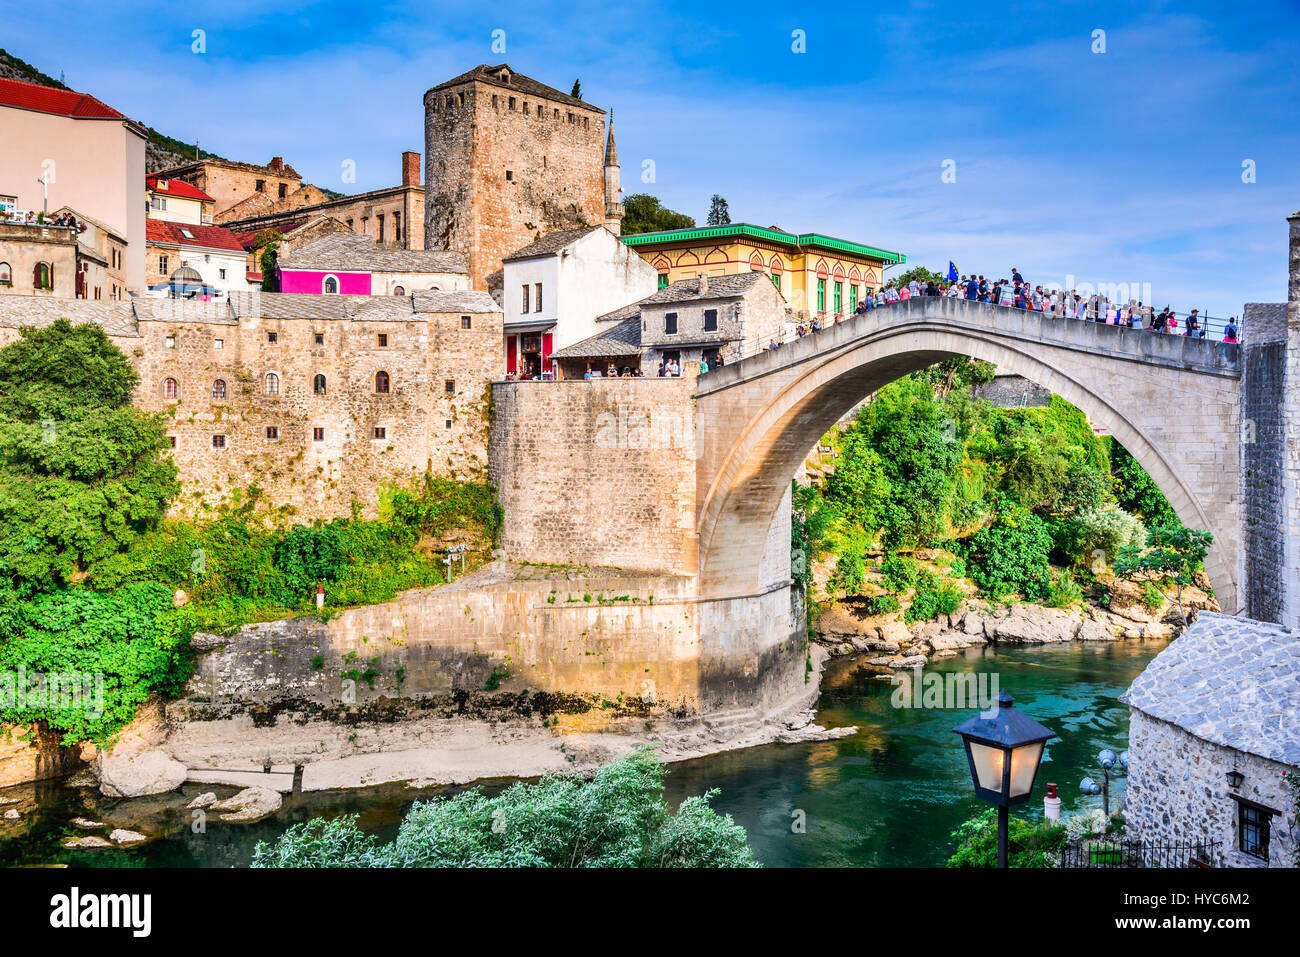 Mostar, Bosnia and Herzegovina. Morning sun on Nerteva River and Old City of Mostar, with Ottoman Mosque - Stock Image